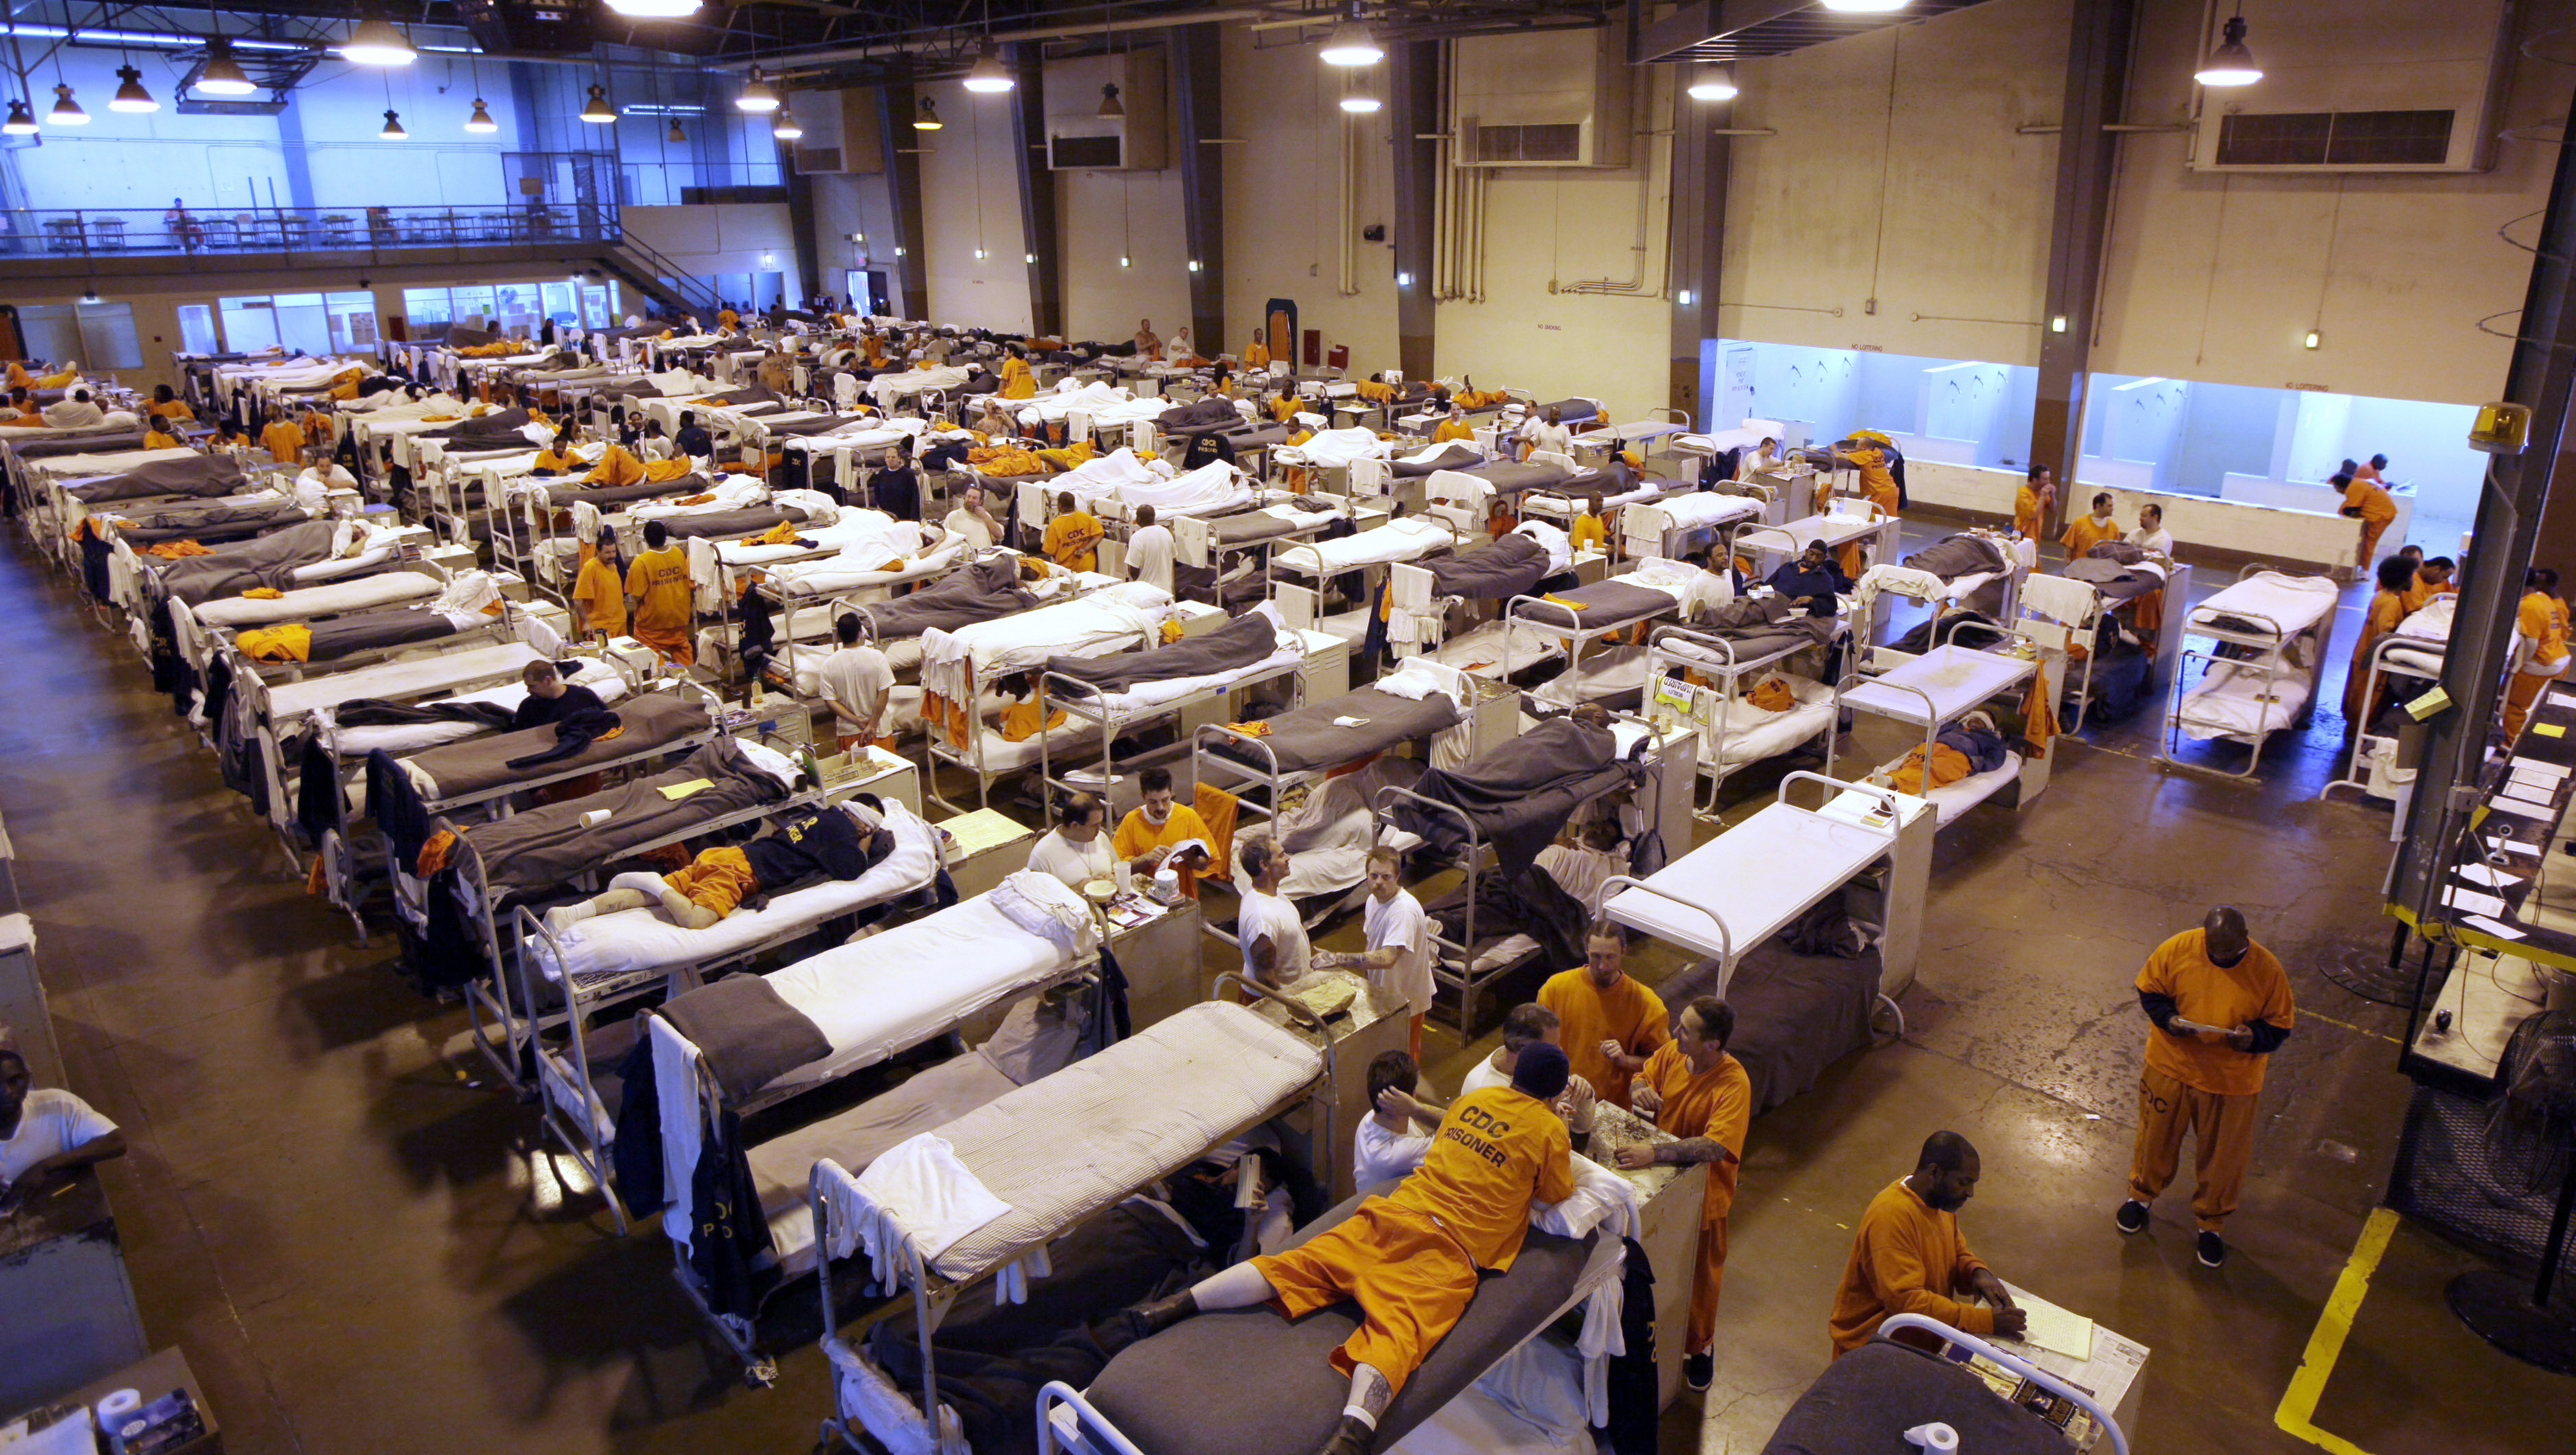 Inmates crowd the gymnasium at San Quentin prison in San Quentin, Calif. California on Monday, July 13, 2015.